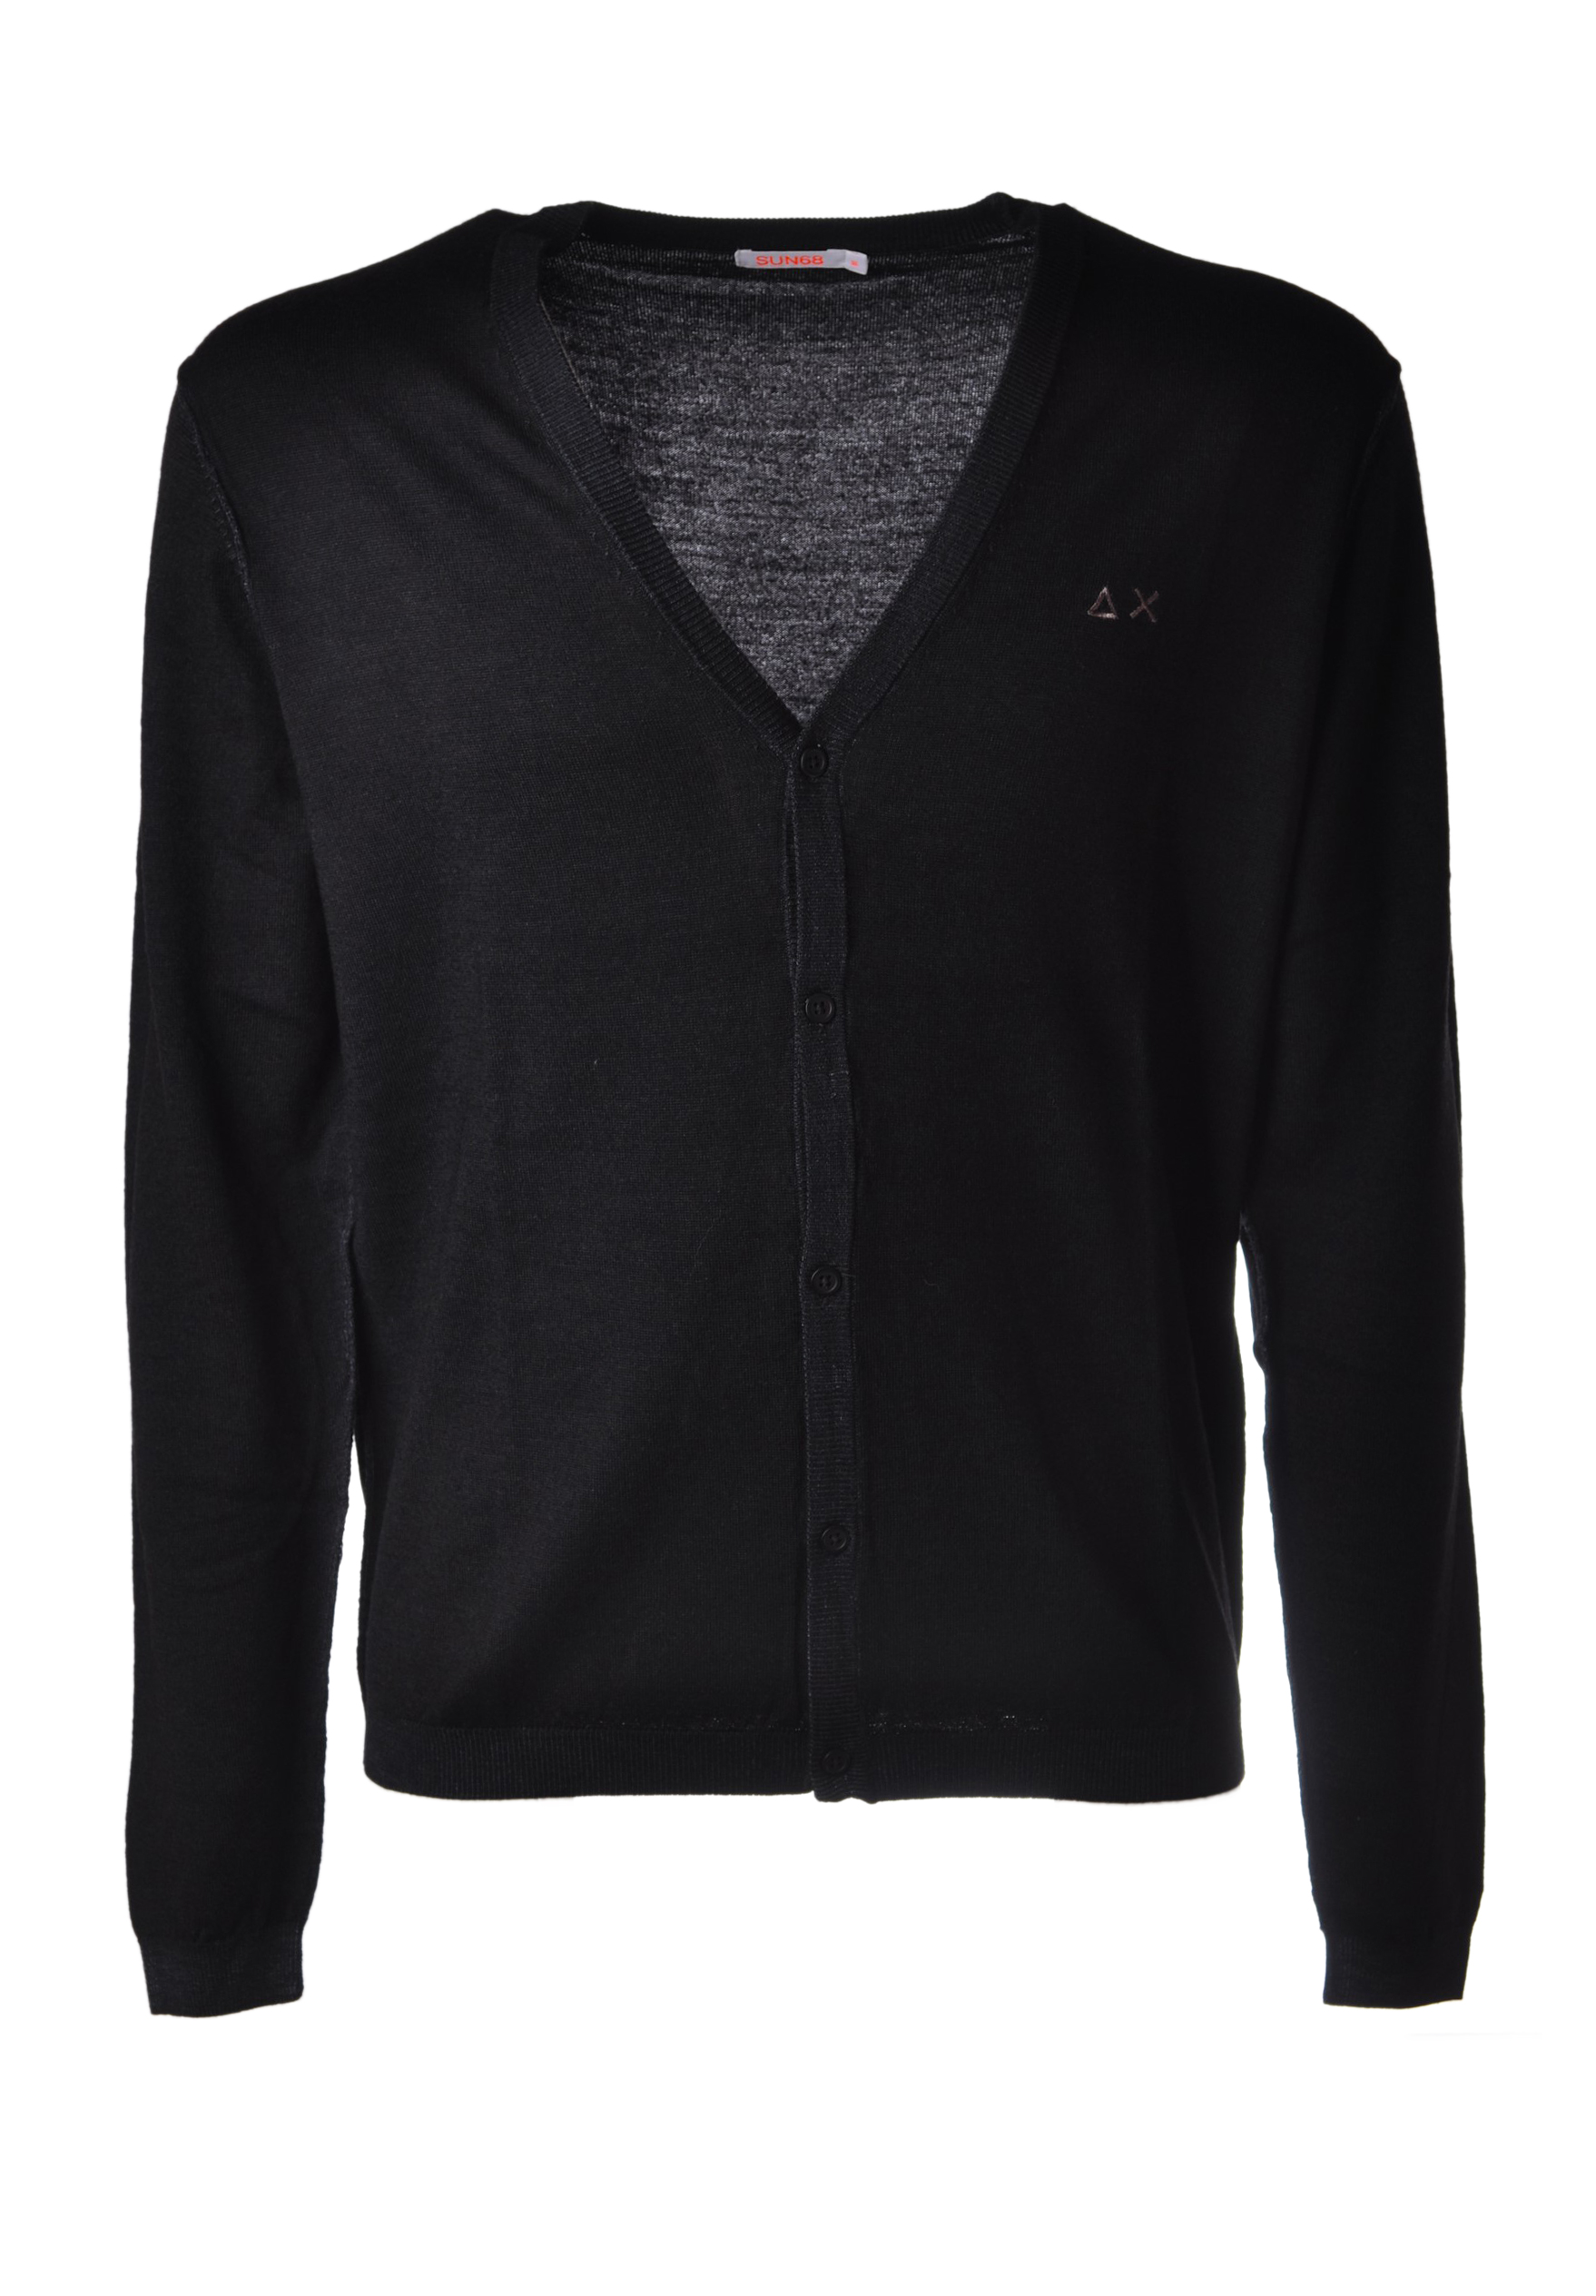 Cheap Sneakernews KNITWEAR - Cardigans Sun 68 Outlet Classic t28Raepv